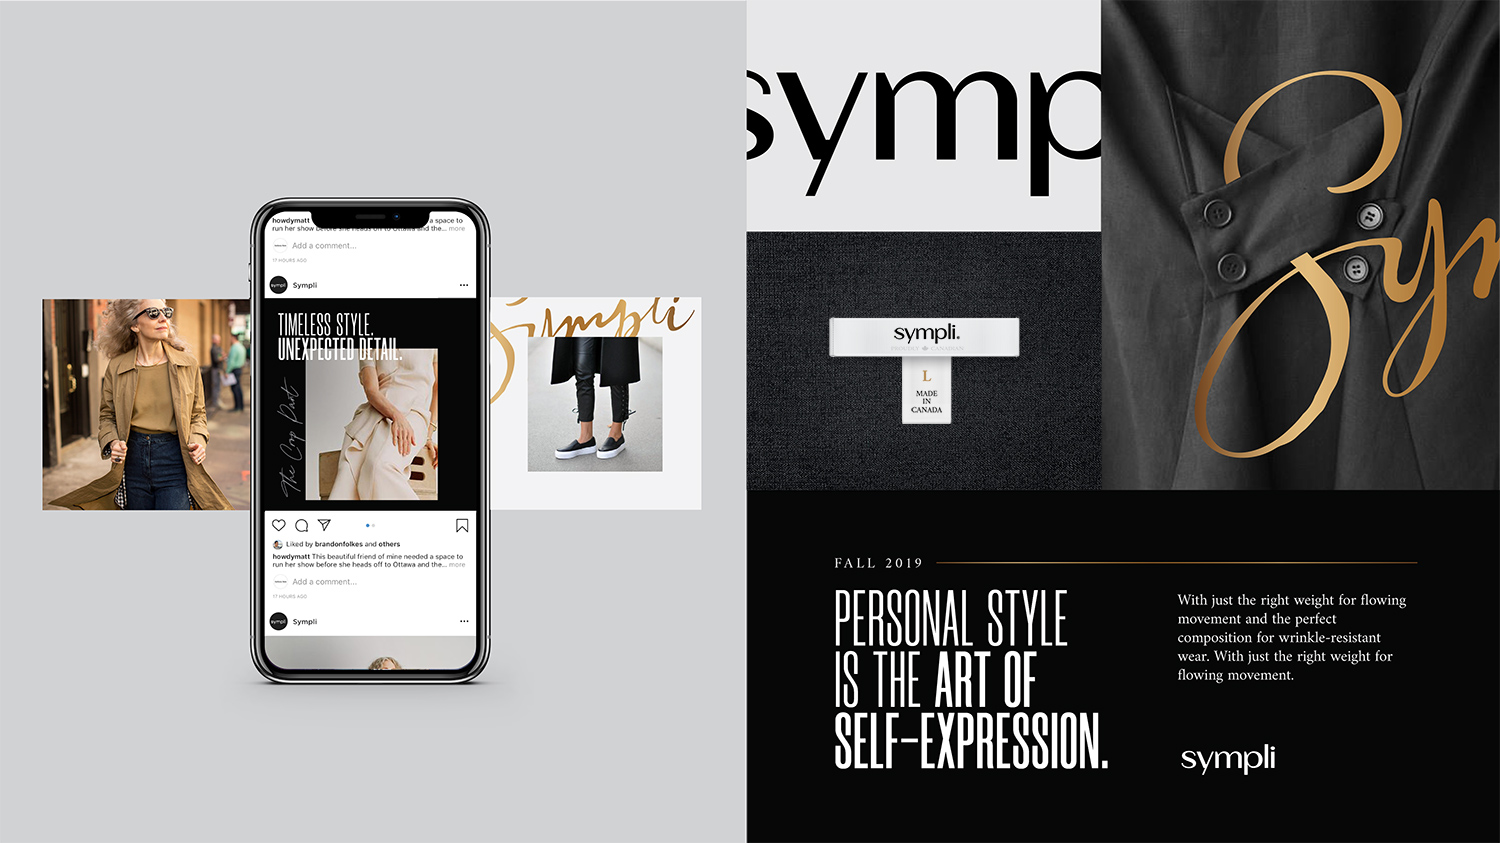 Sympli Branding - Instagram feed and clothing labels